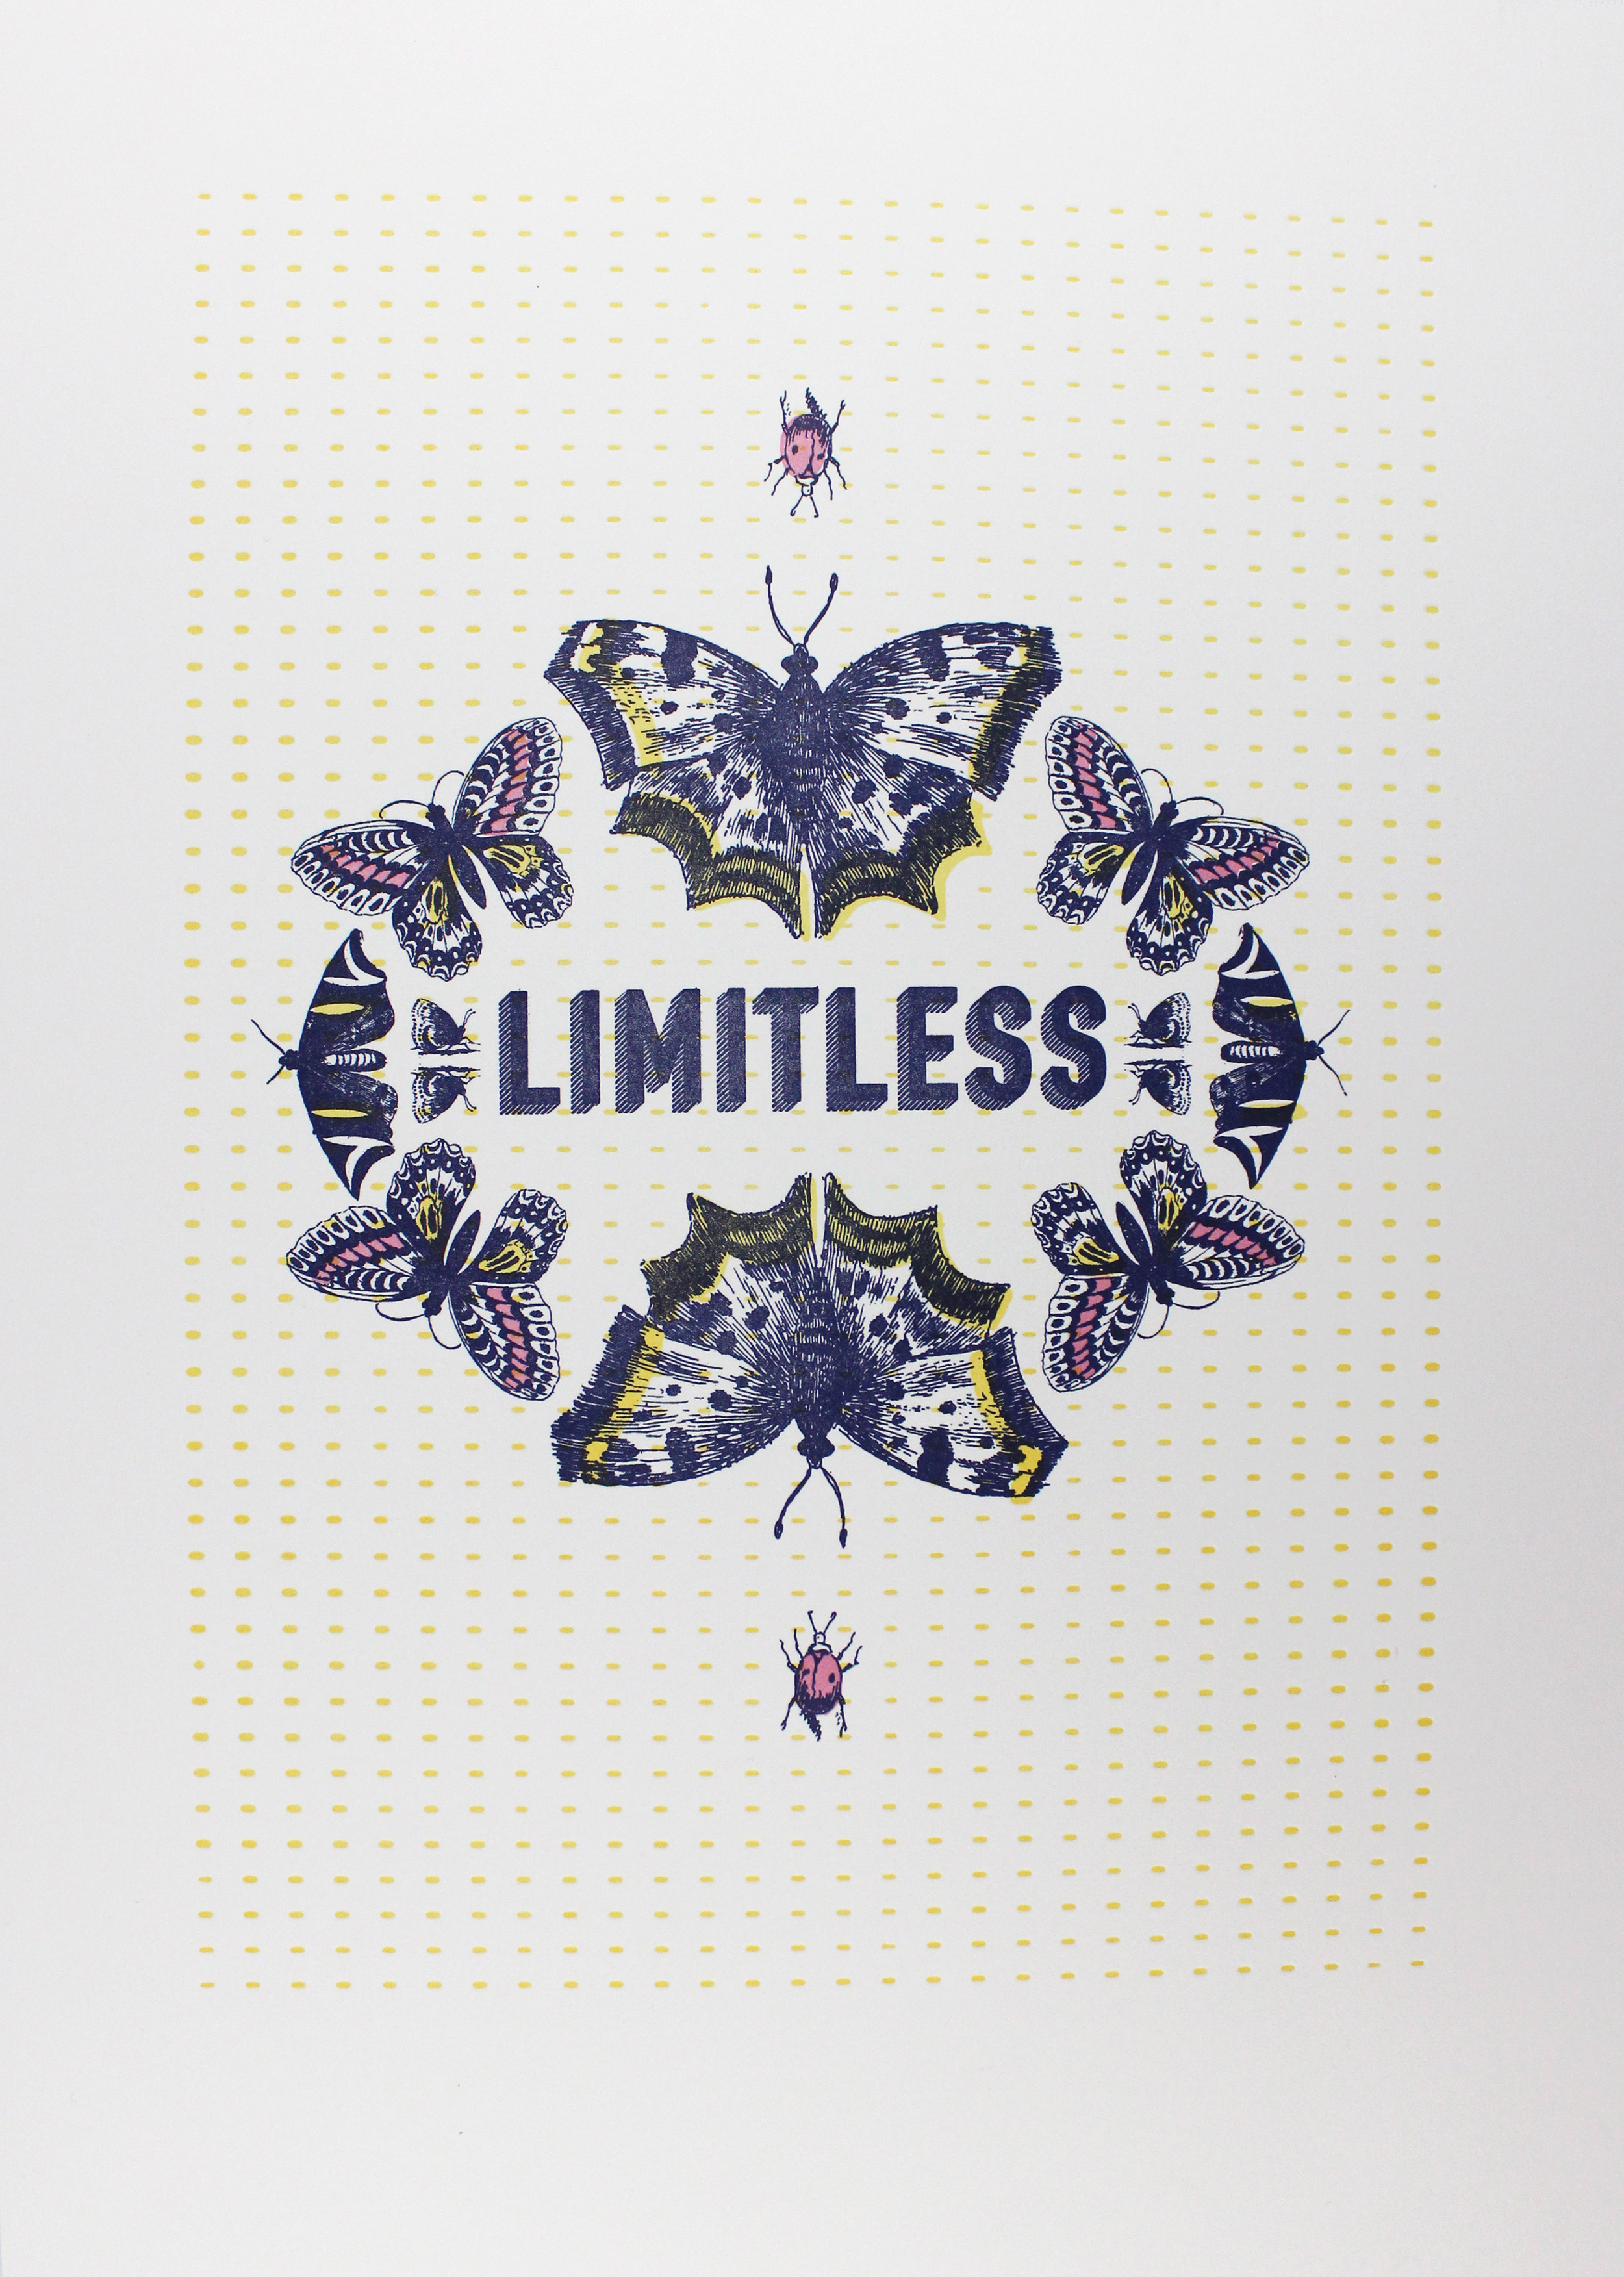 Limitless Collaboration with Jake Inferrera + Rick St Louis